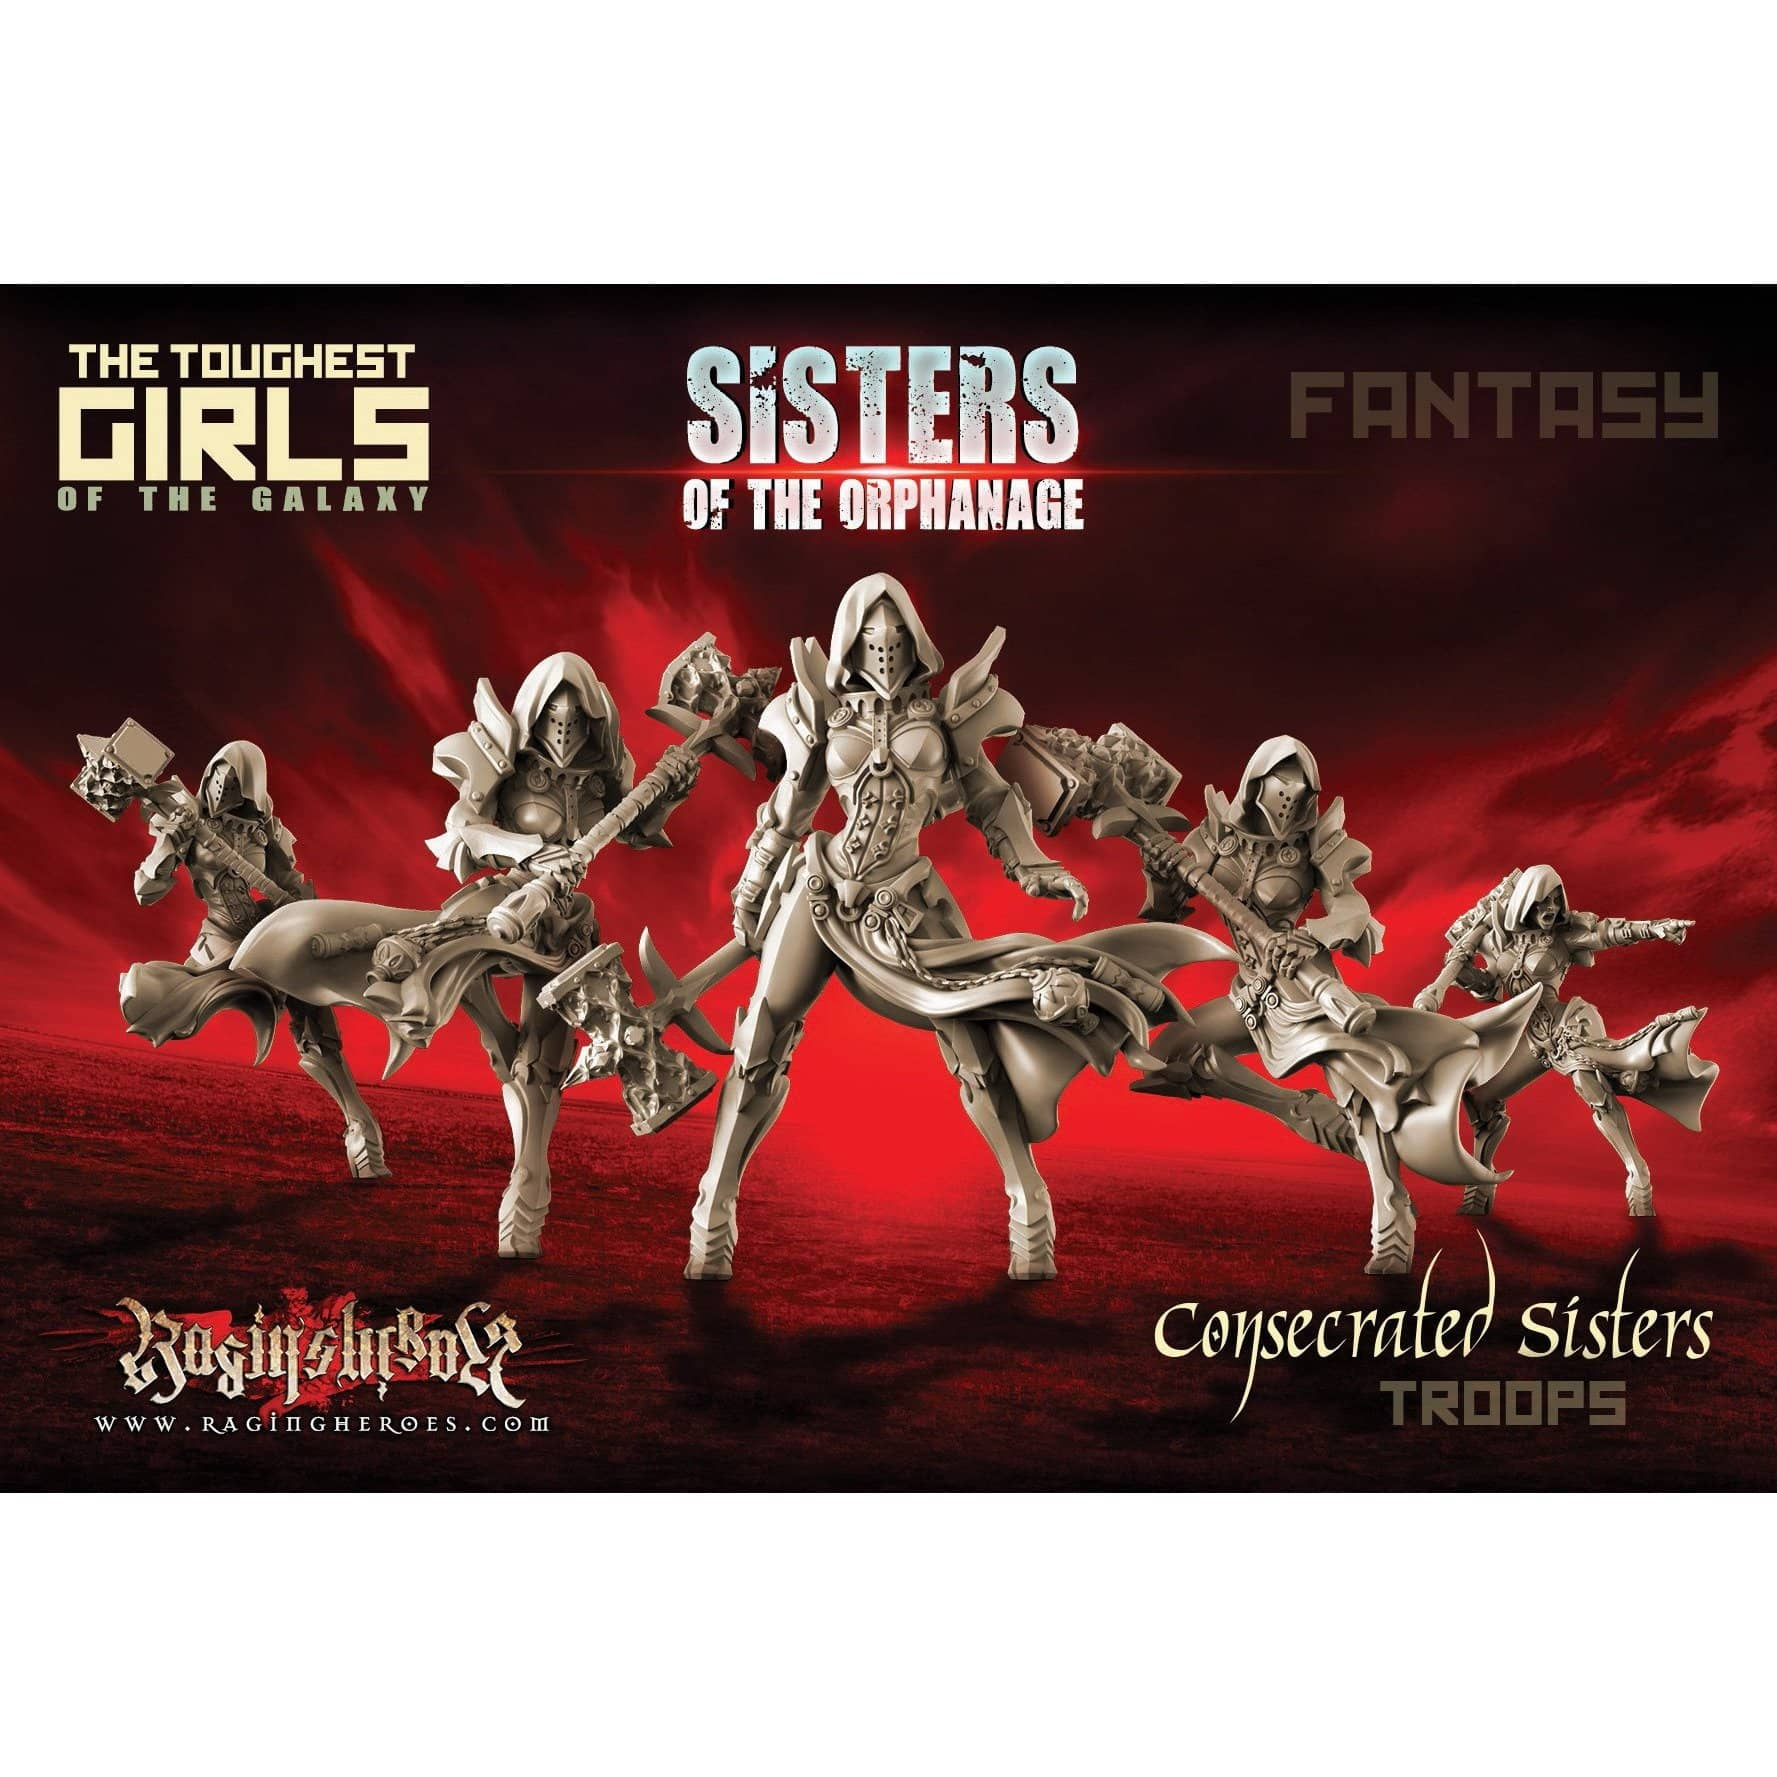 Consecrated Sisters - TROOPS (SotO - F) - Raging Heroes